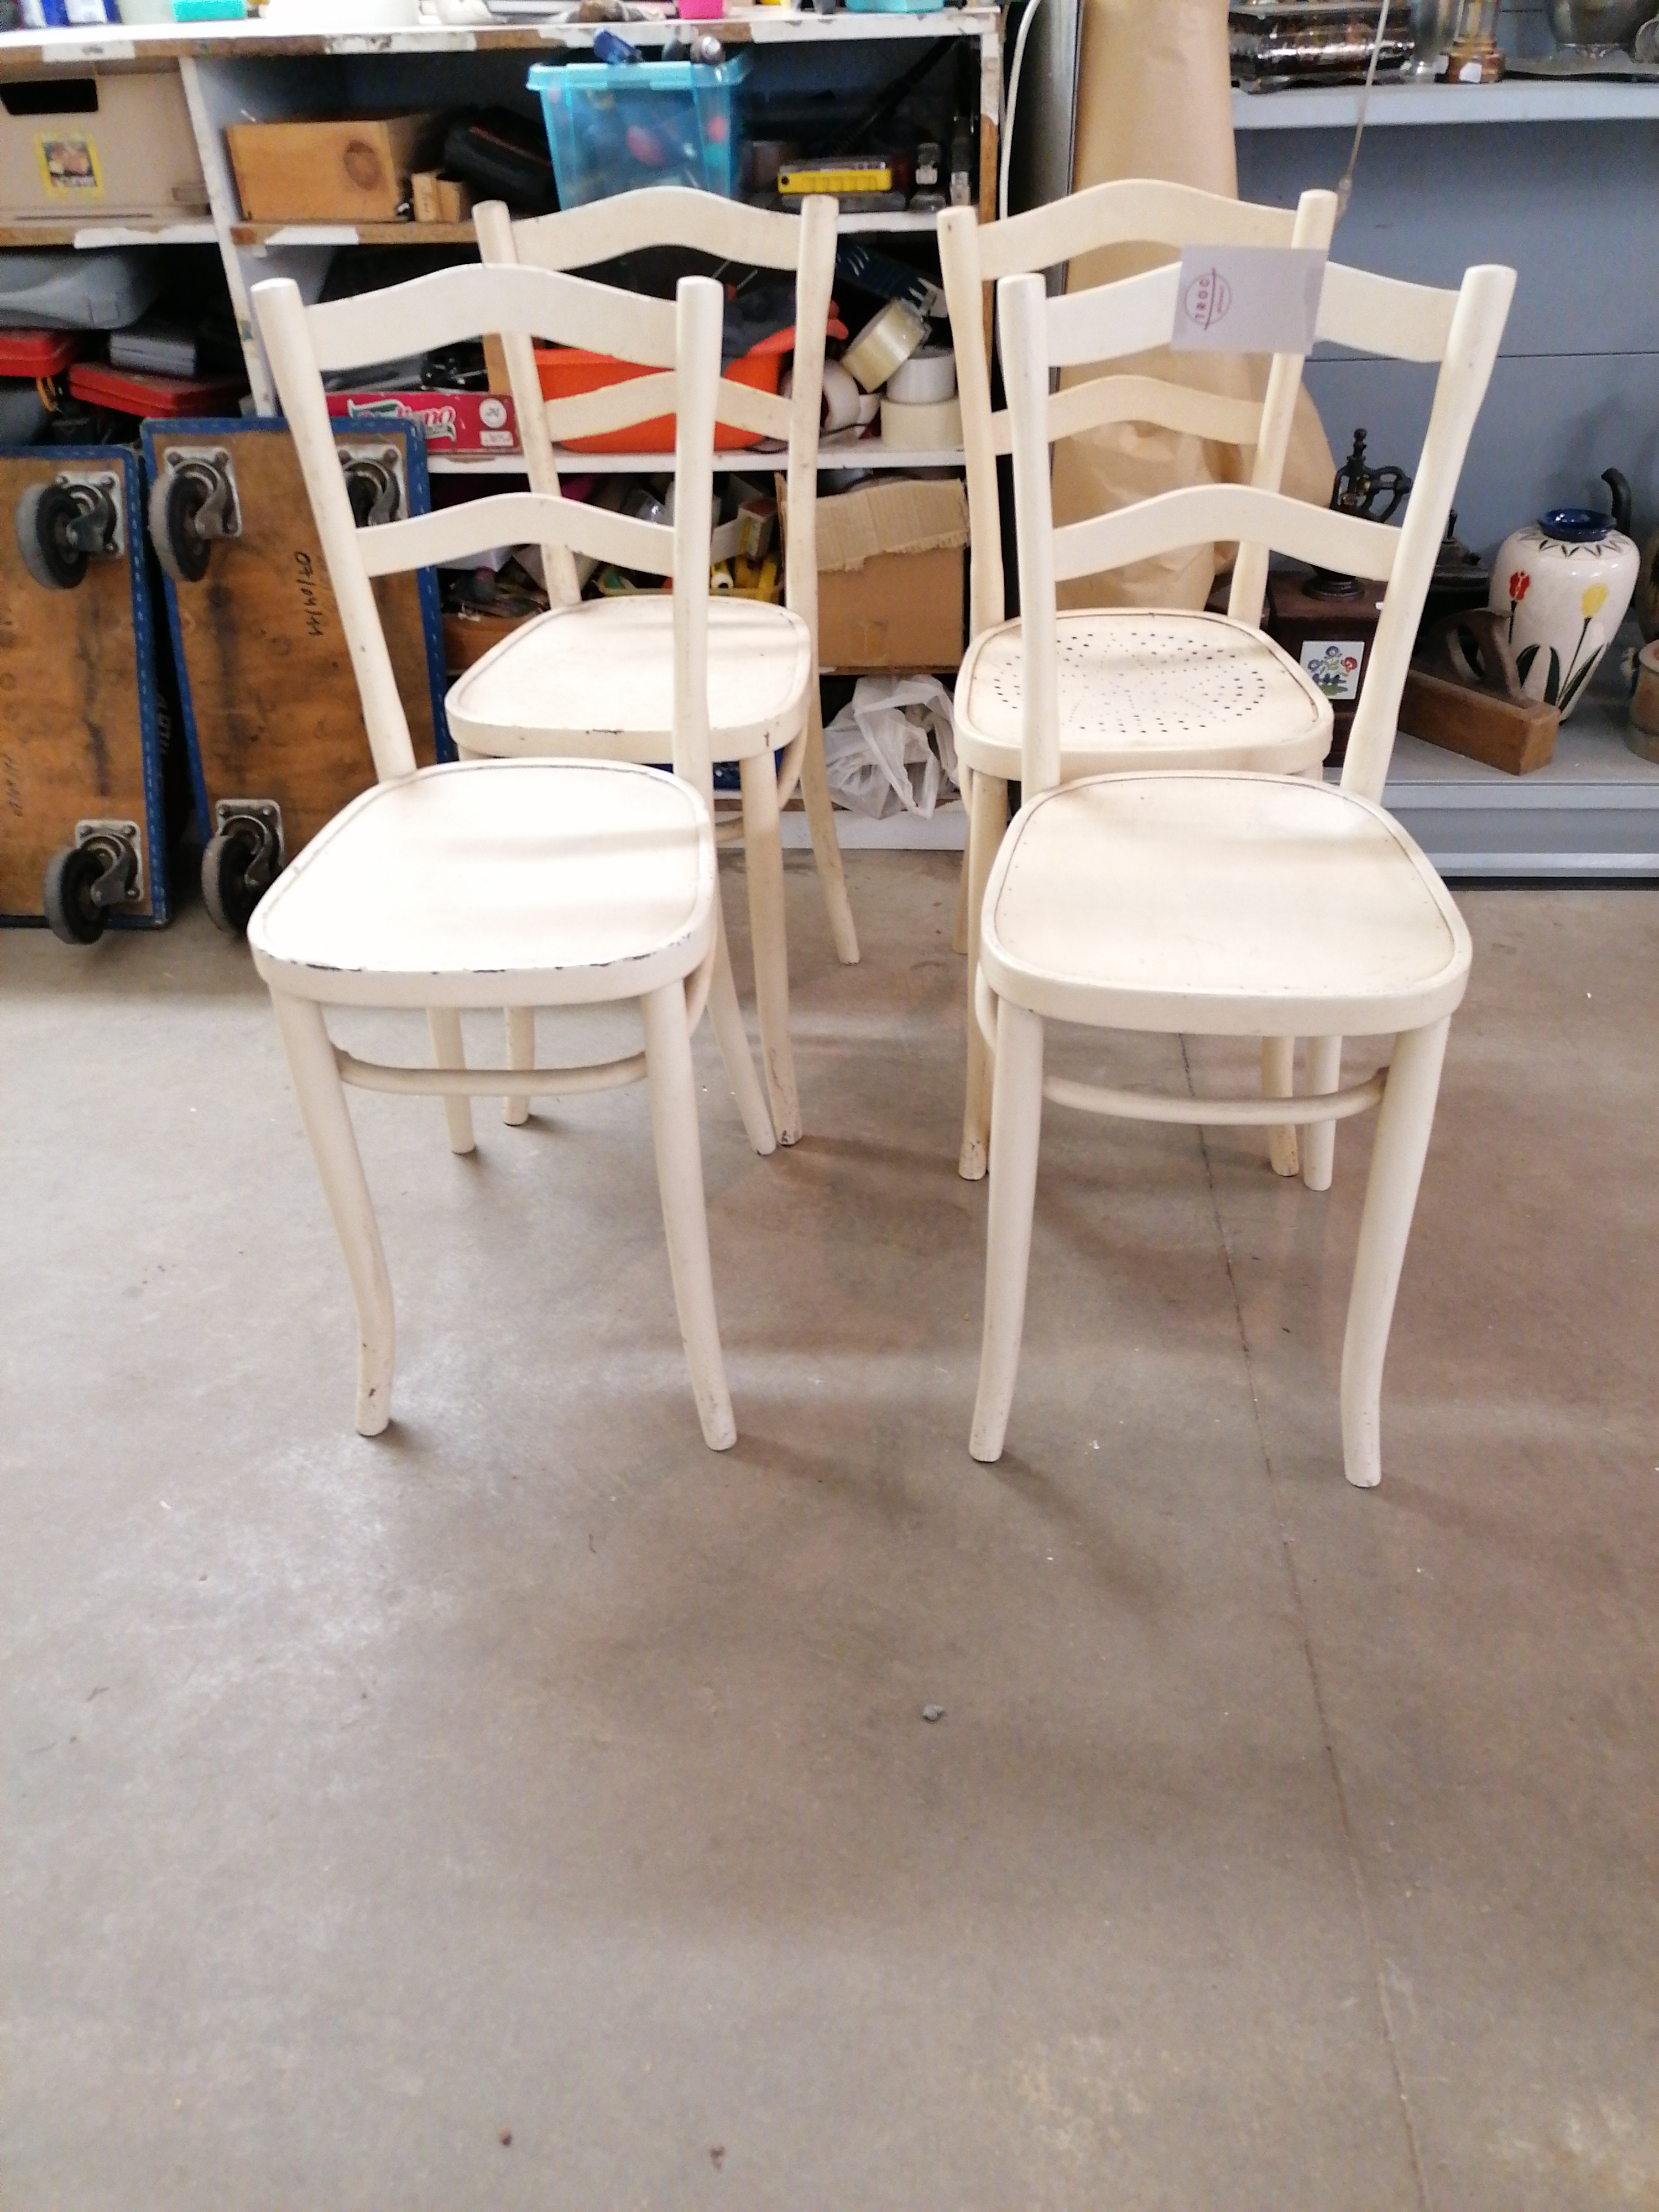 "<p>Lot 3 chaises blanches+<br />1 chaise<br />40,00 € T.T.C<br /><a href=""/Article/111004?type=depose"" style=""color:white;"" target=""_blank"">Lien vers l&#39;article</a></p>"